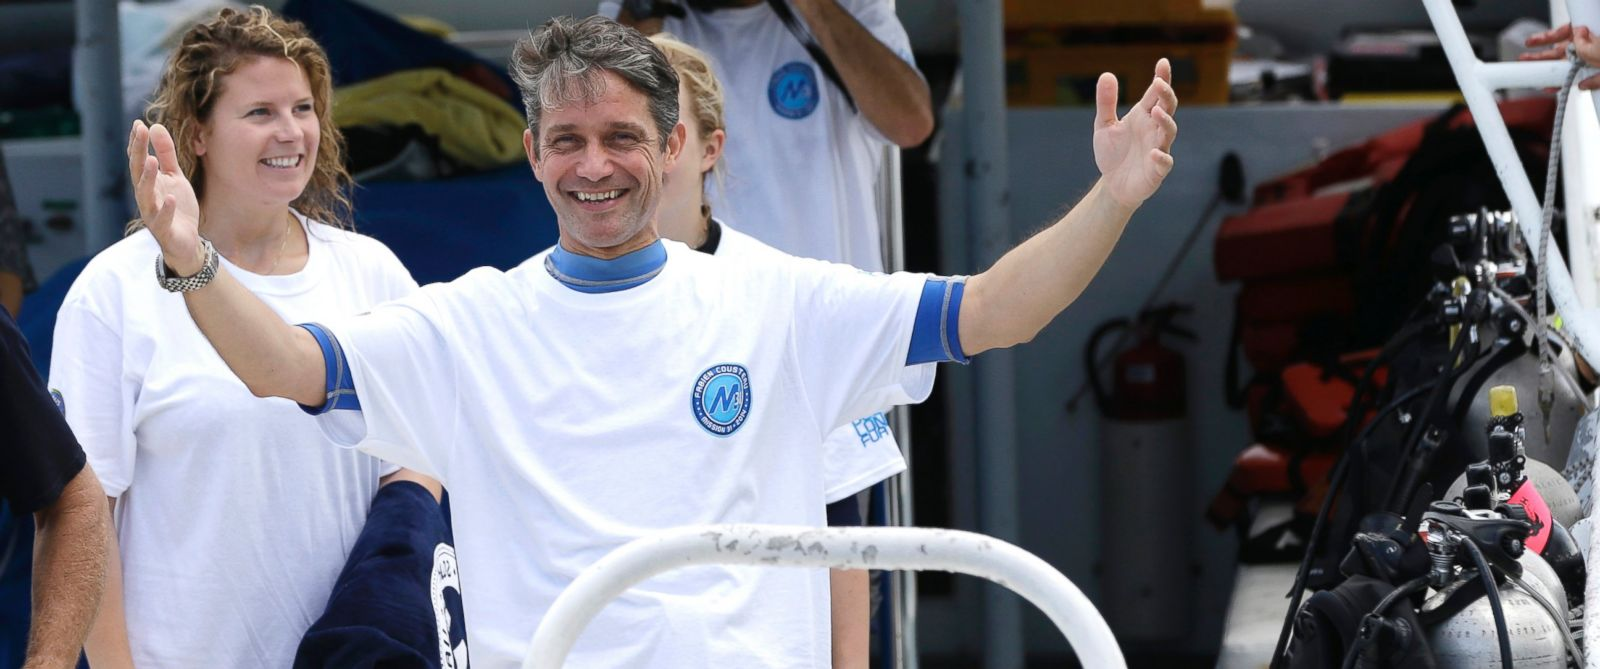 PHOTO: Fabien Cousteau reacts as he returns to the dock after 31 days undersea in the Aquarius Reef Base, July 2, 2014, in Islamorada, in the Florida Keys.